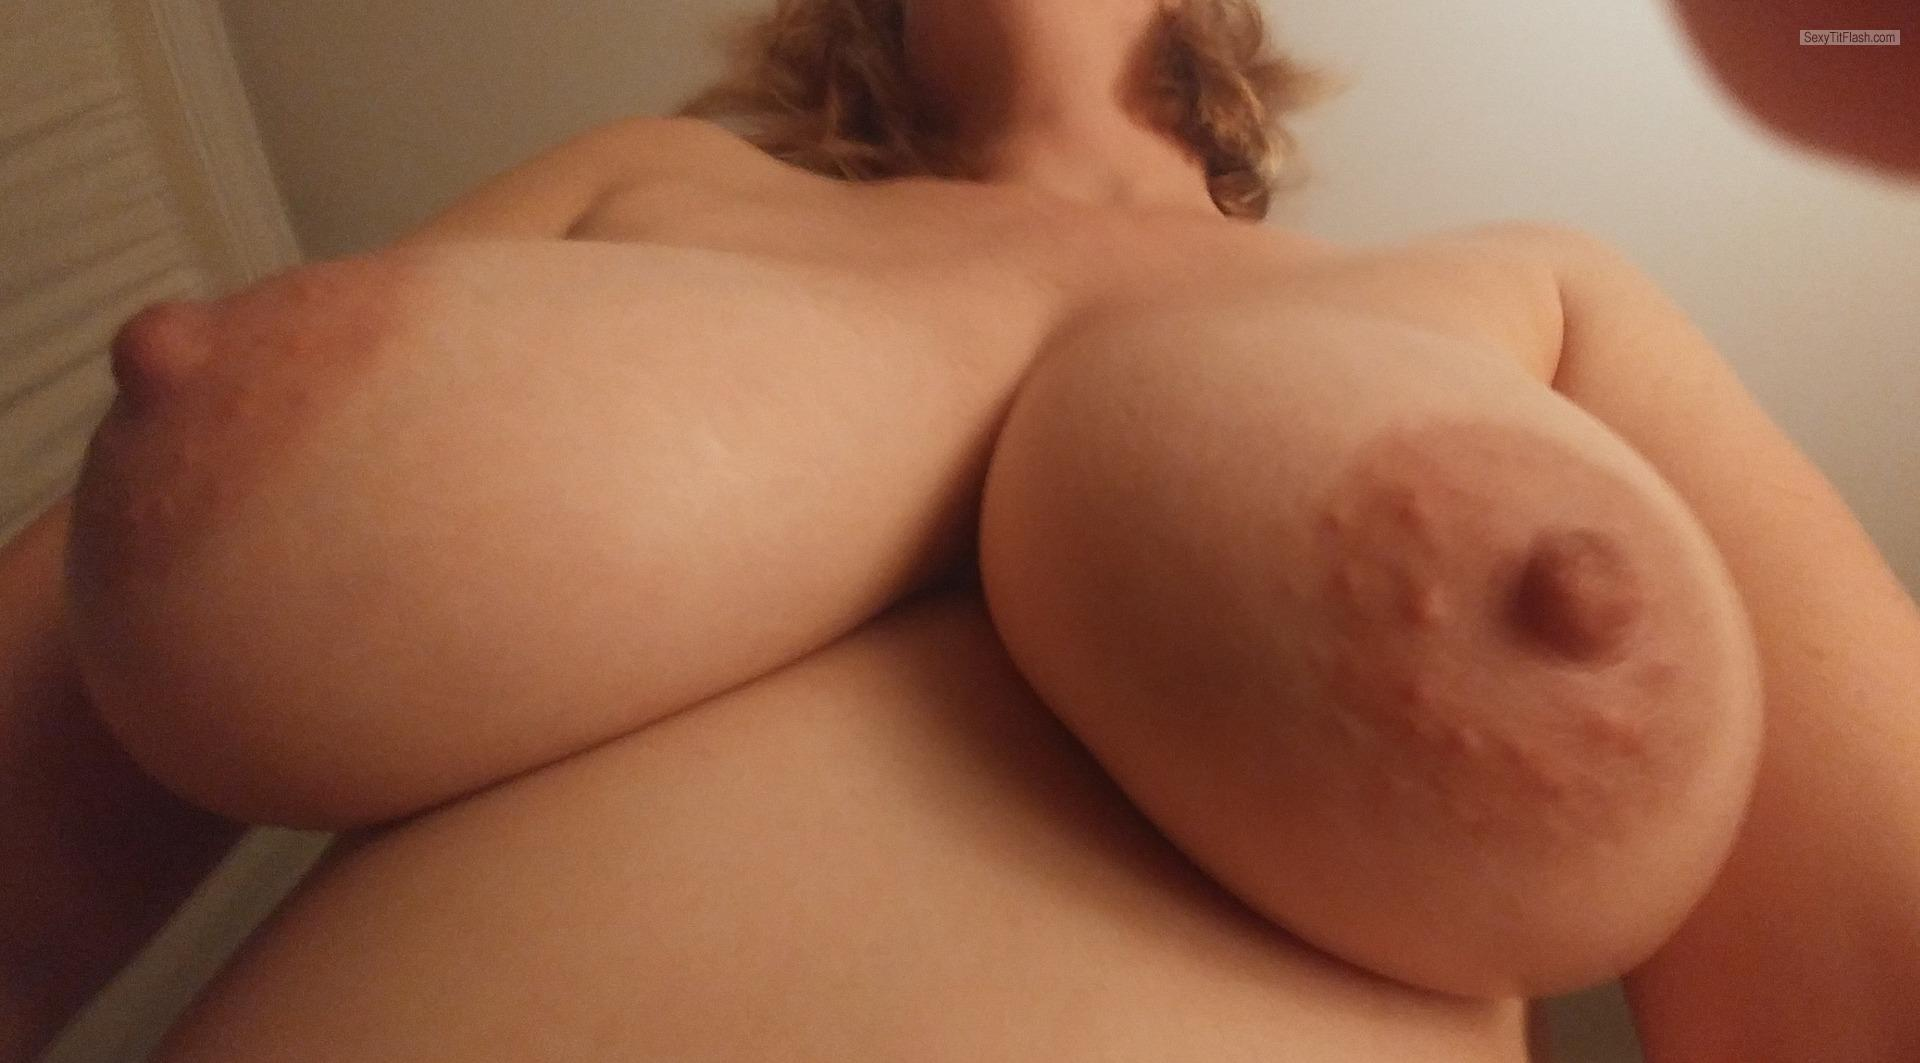 My Big Tits Selfie by Cumwife